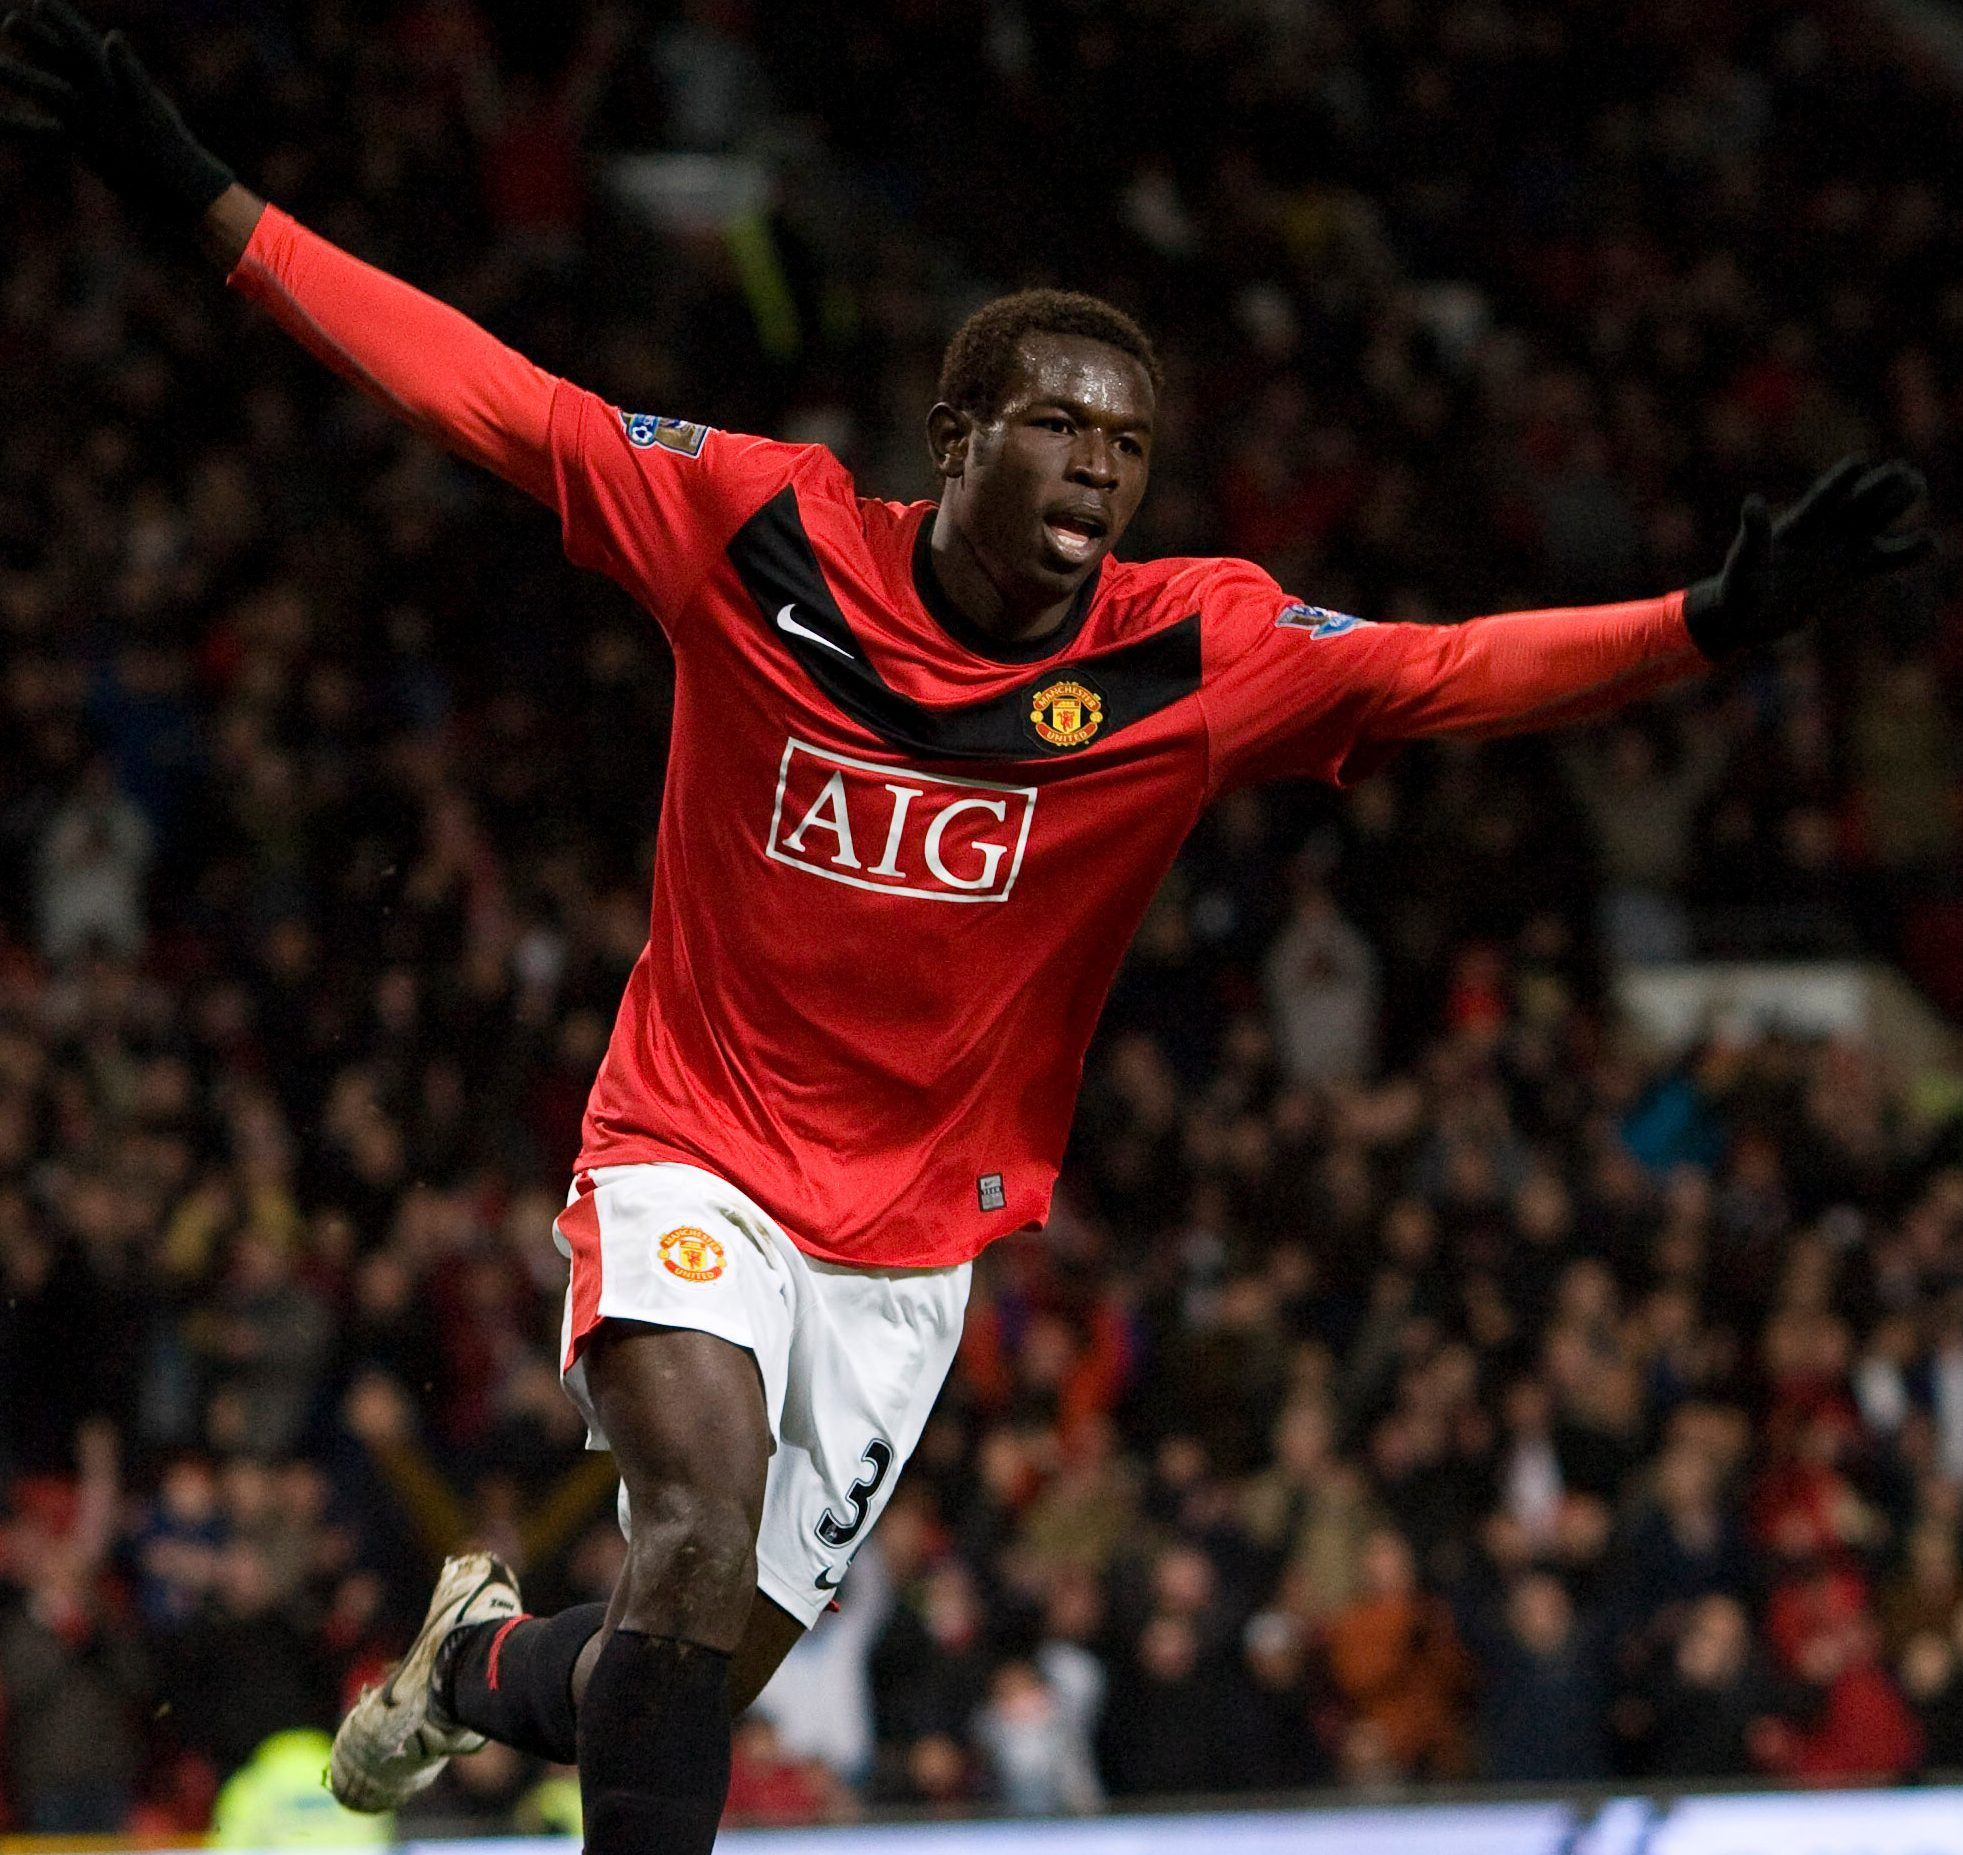 United paid Molde £3.5m for Mame Biram Diouf in 2009